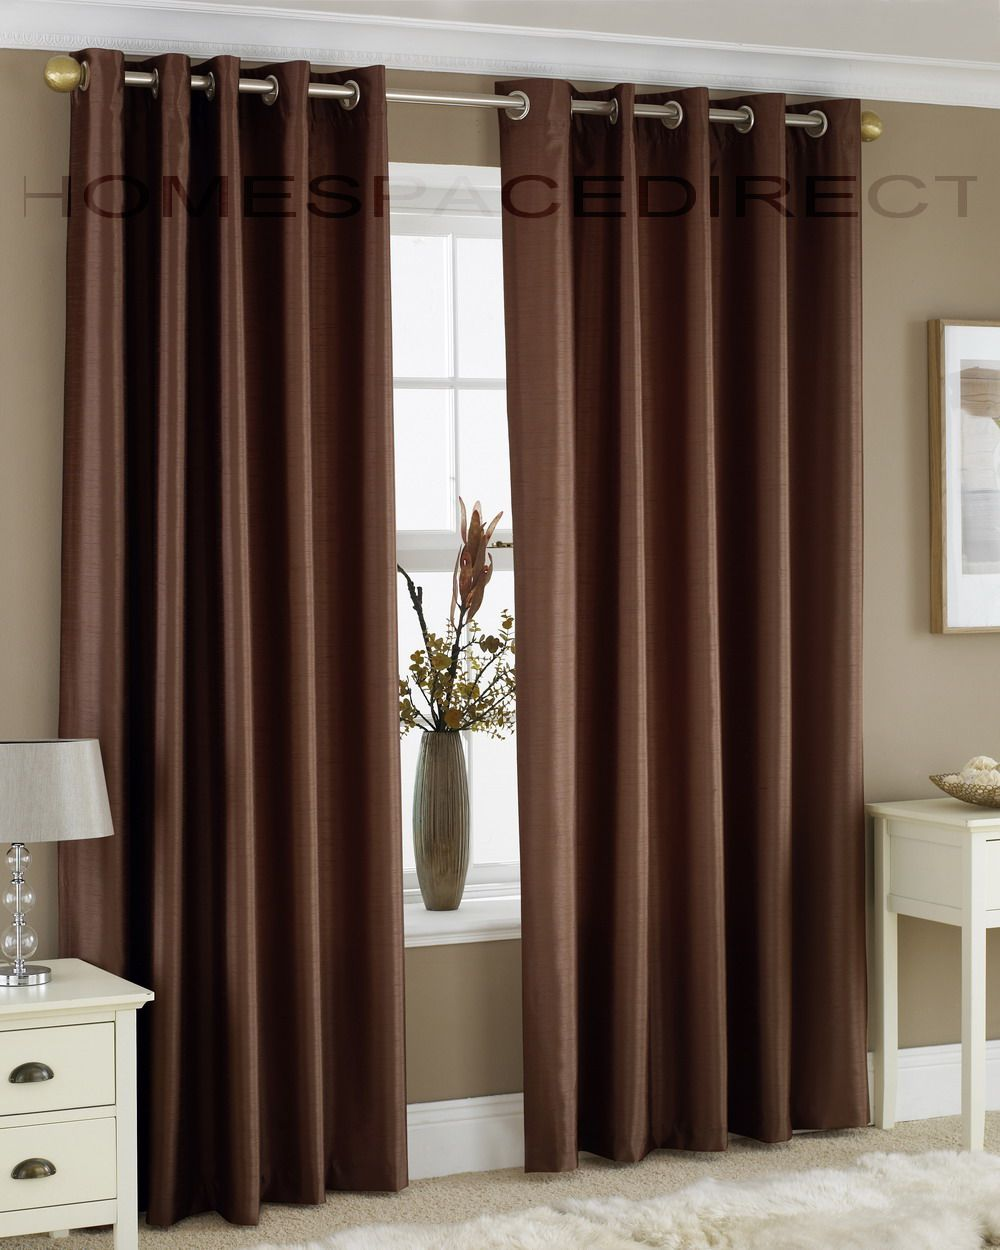 Brown Curtains For The Bedroom To Tie In Blue And White